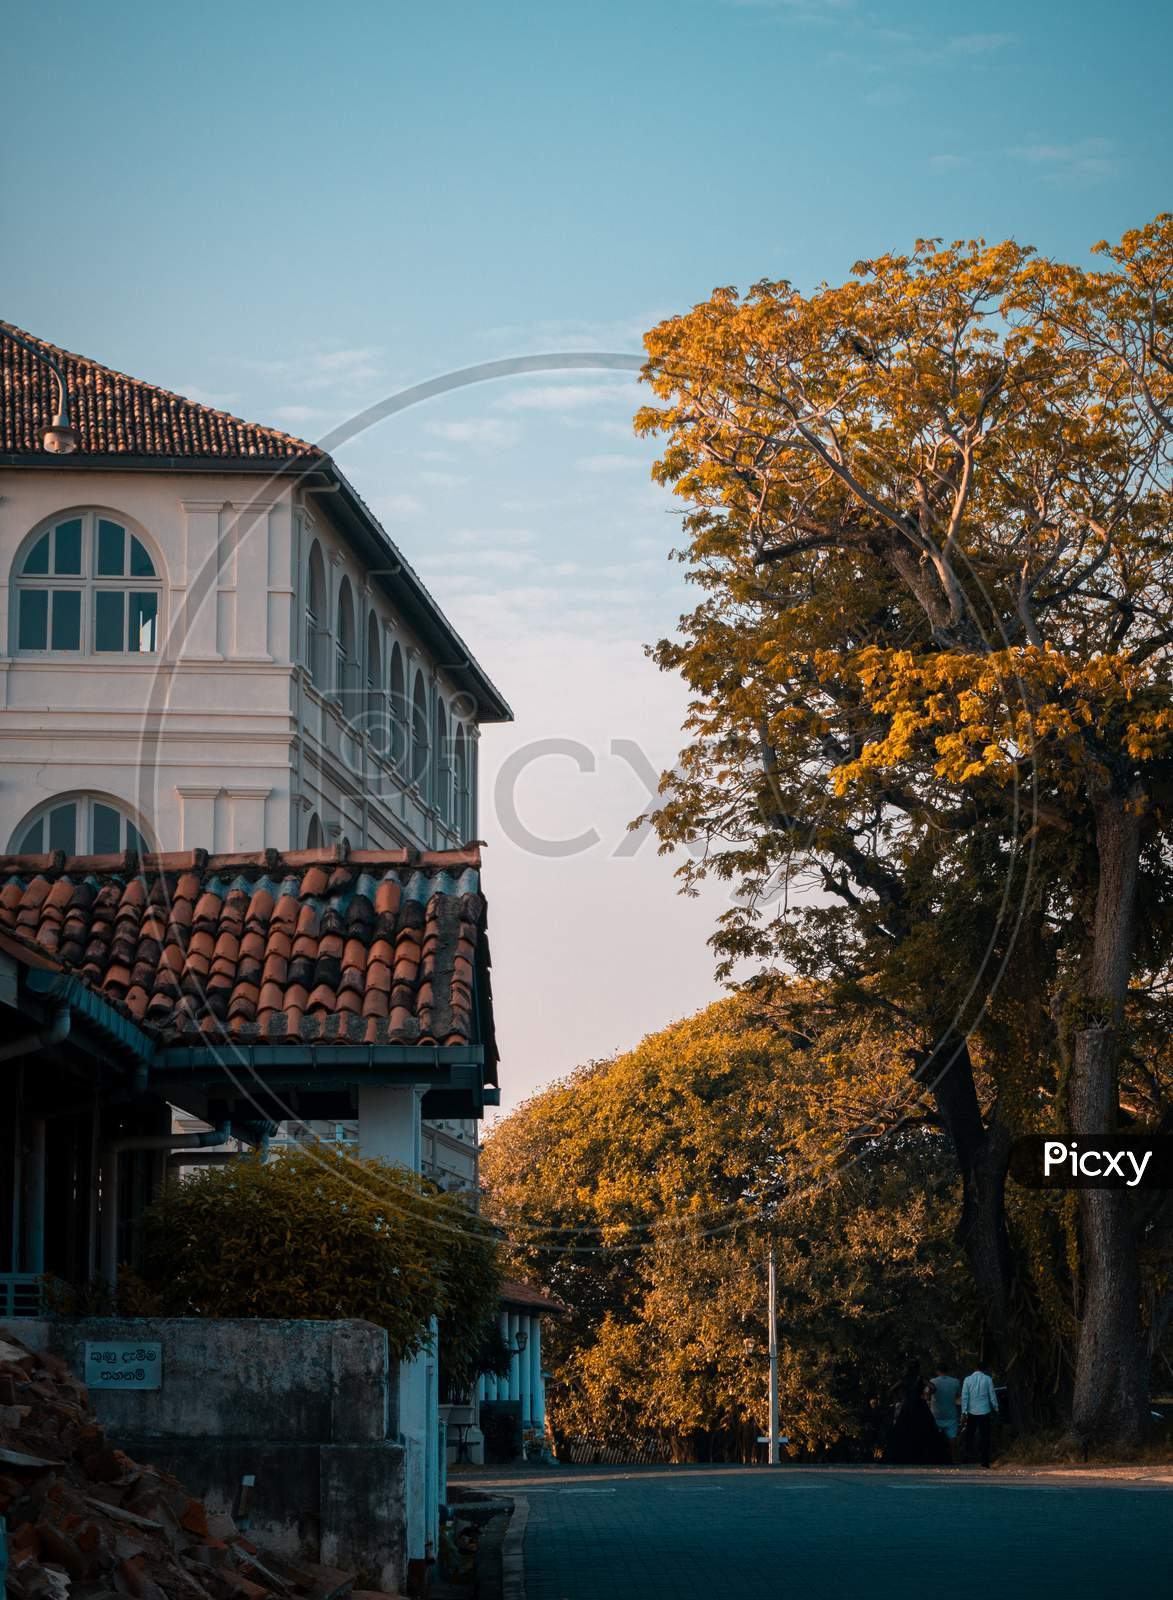 Amangalla Hotel Building And The Tall Trees And The Streets In Galle Fort Evening Landscape Photograph.